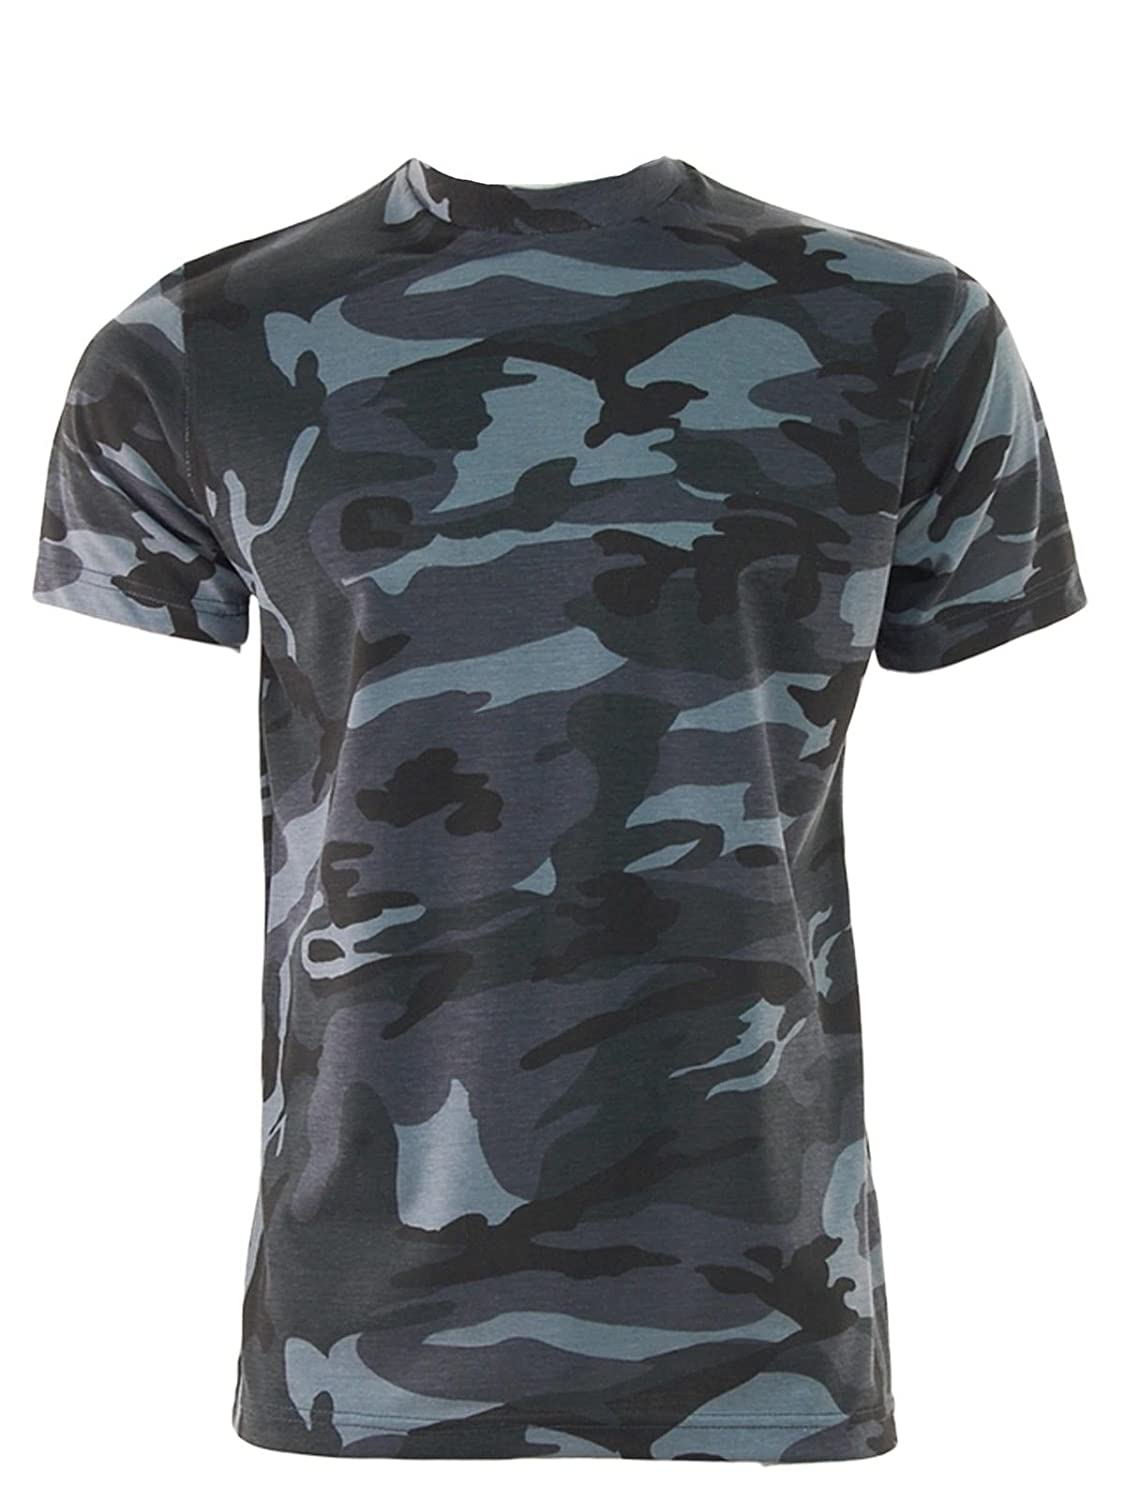 Mens/' Camouflage Camo Military Army Outdoors Hunting Fishing T Shirt Cotton